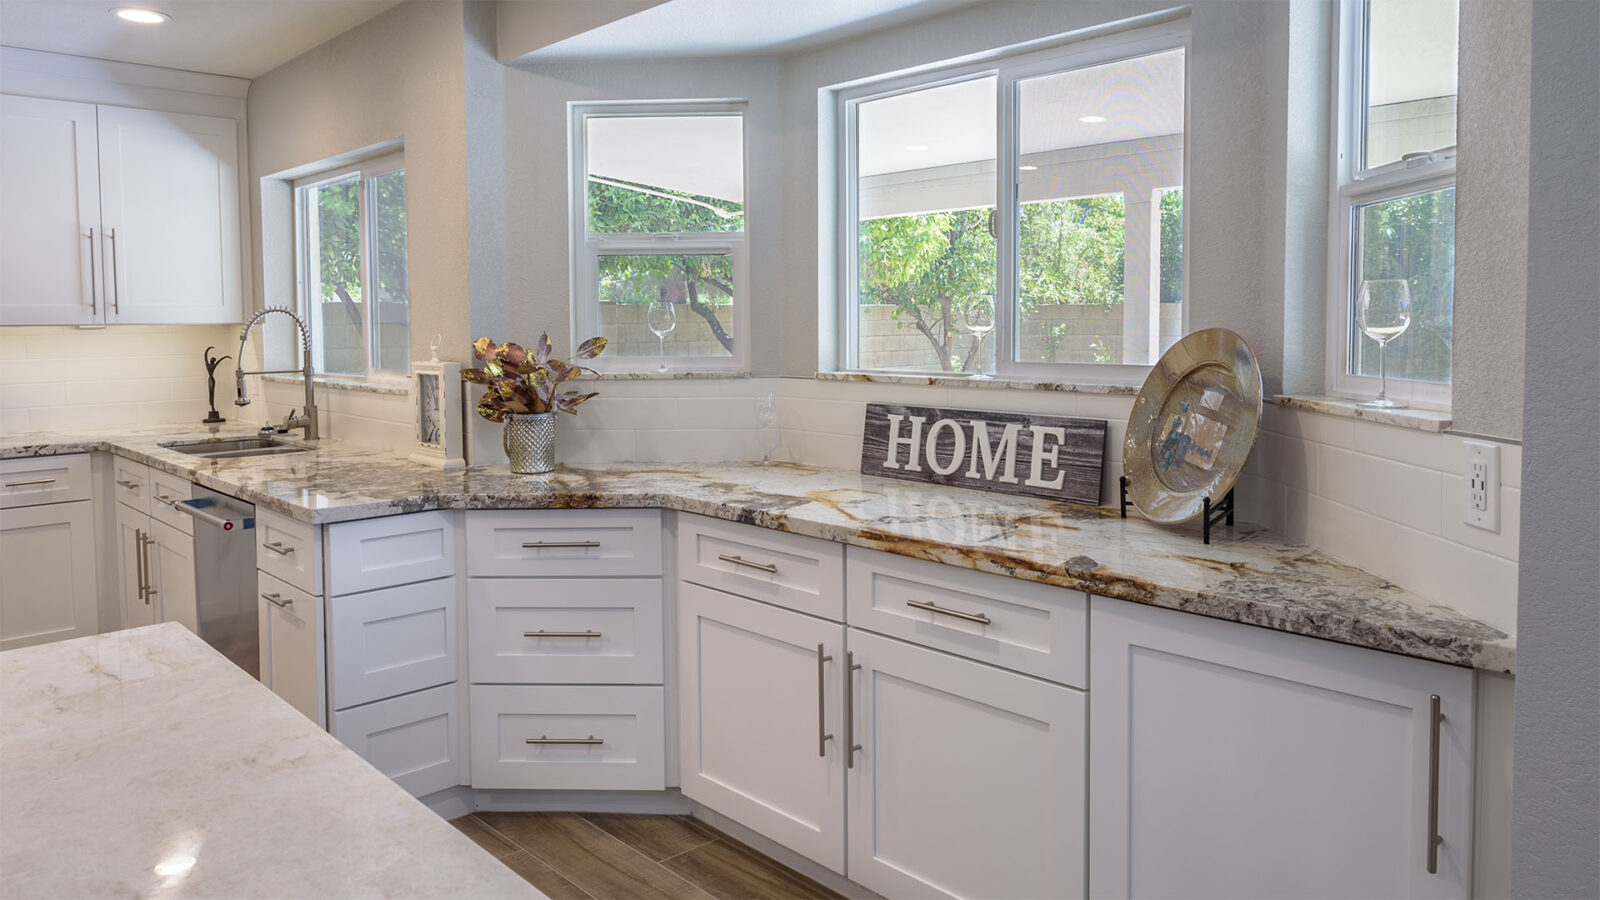 A kitchen with white raised panels